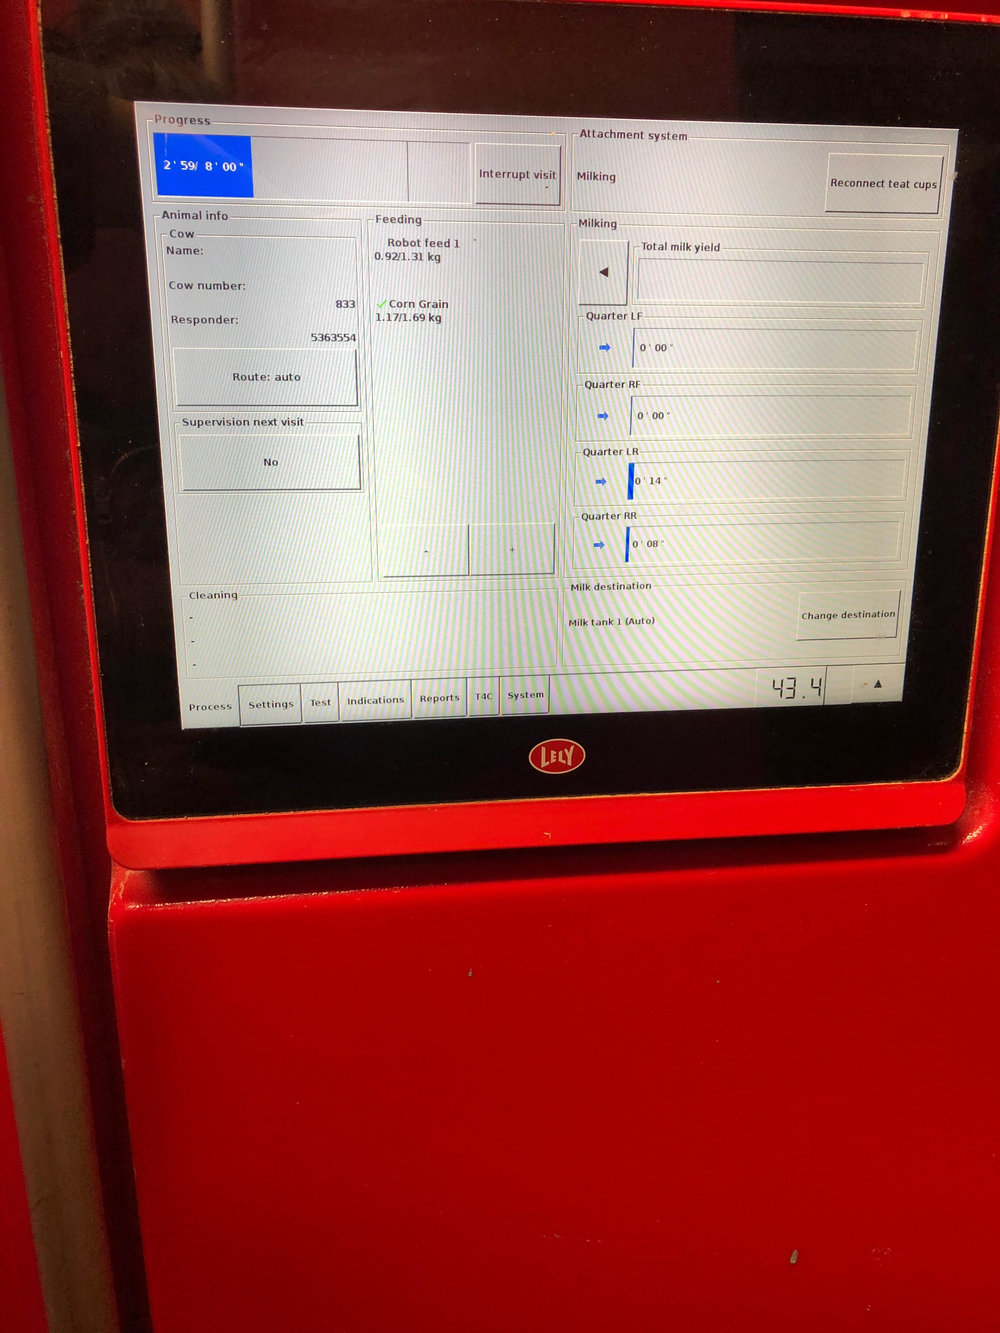 Lely in Action - Display shows cow number, amount of feed, status of each milking quarter and duration of last visit.